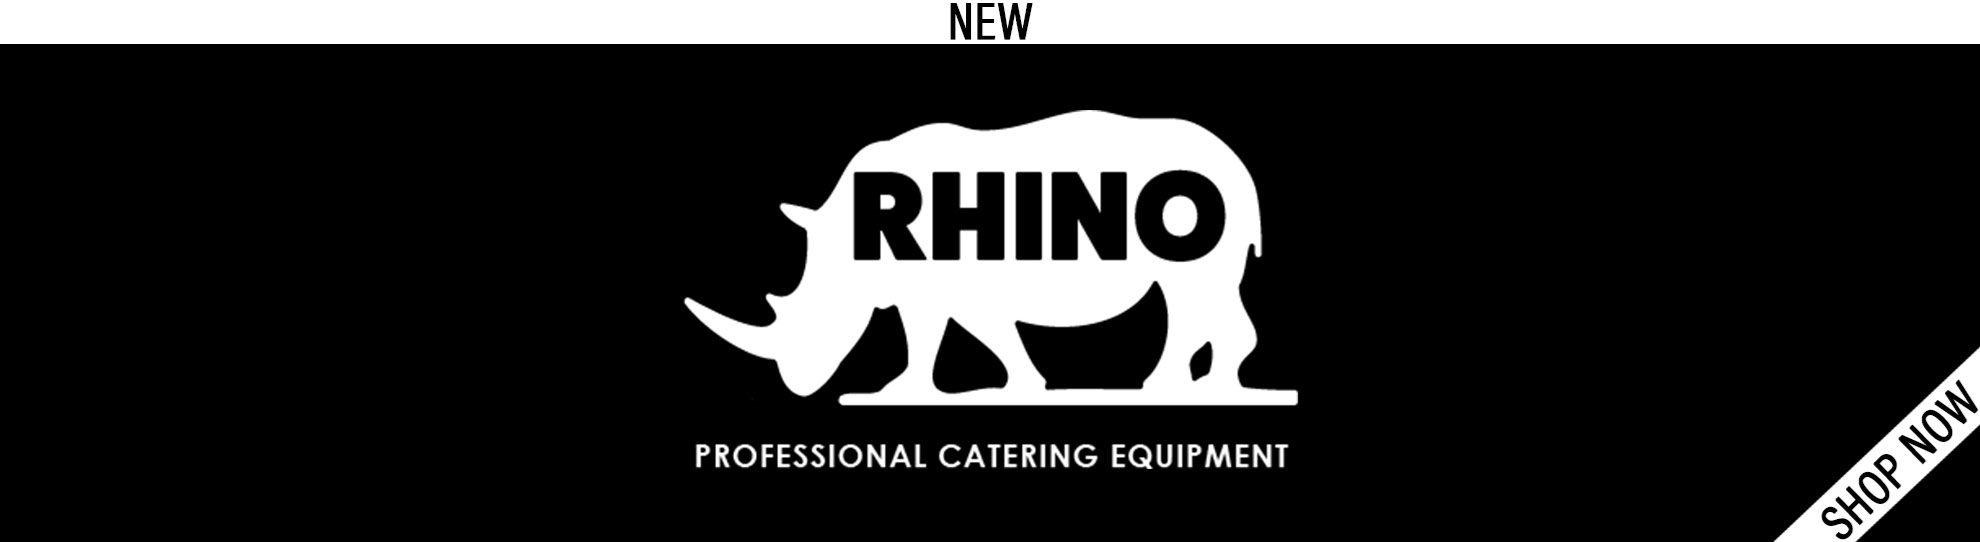 hugh jordan rhino equipment